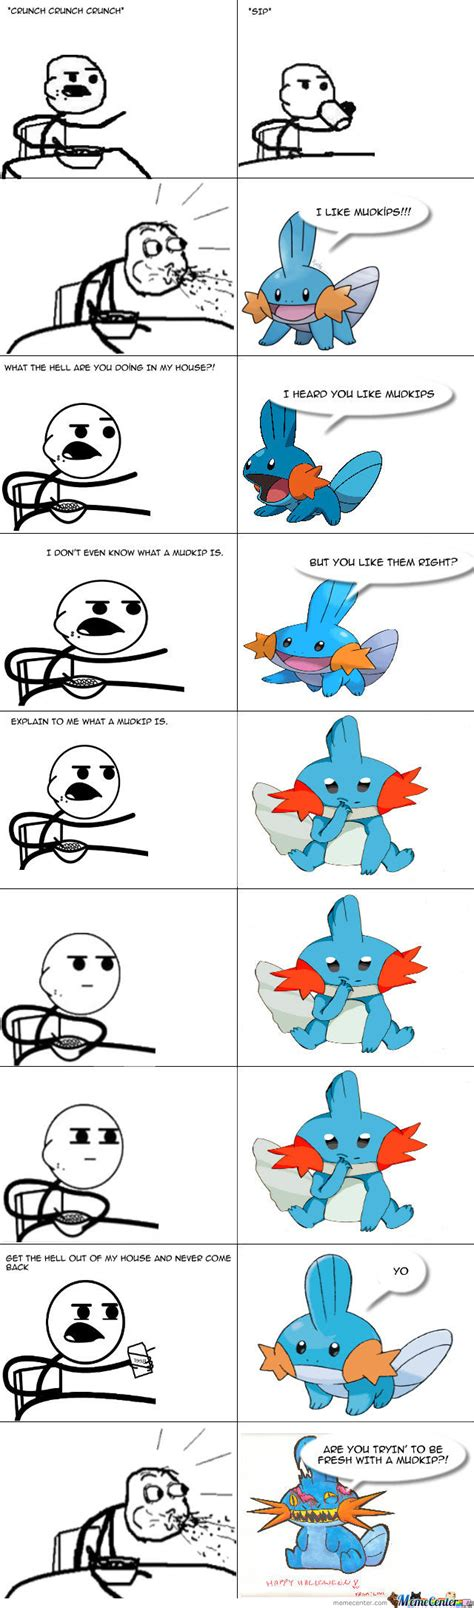 mudkip enters cereal guy s house and talks about mudkips